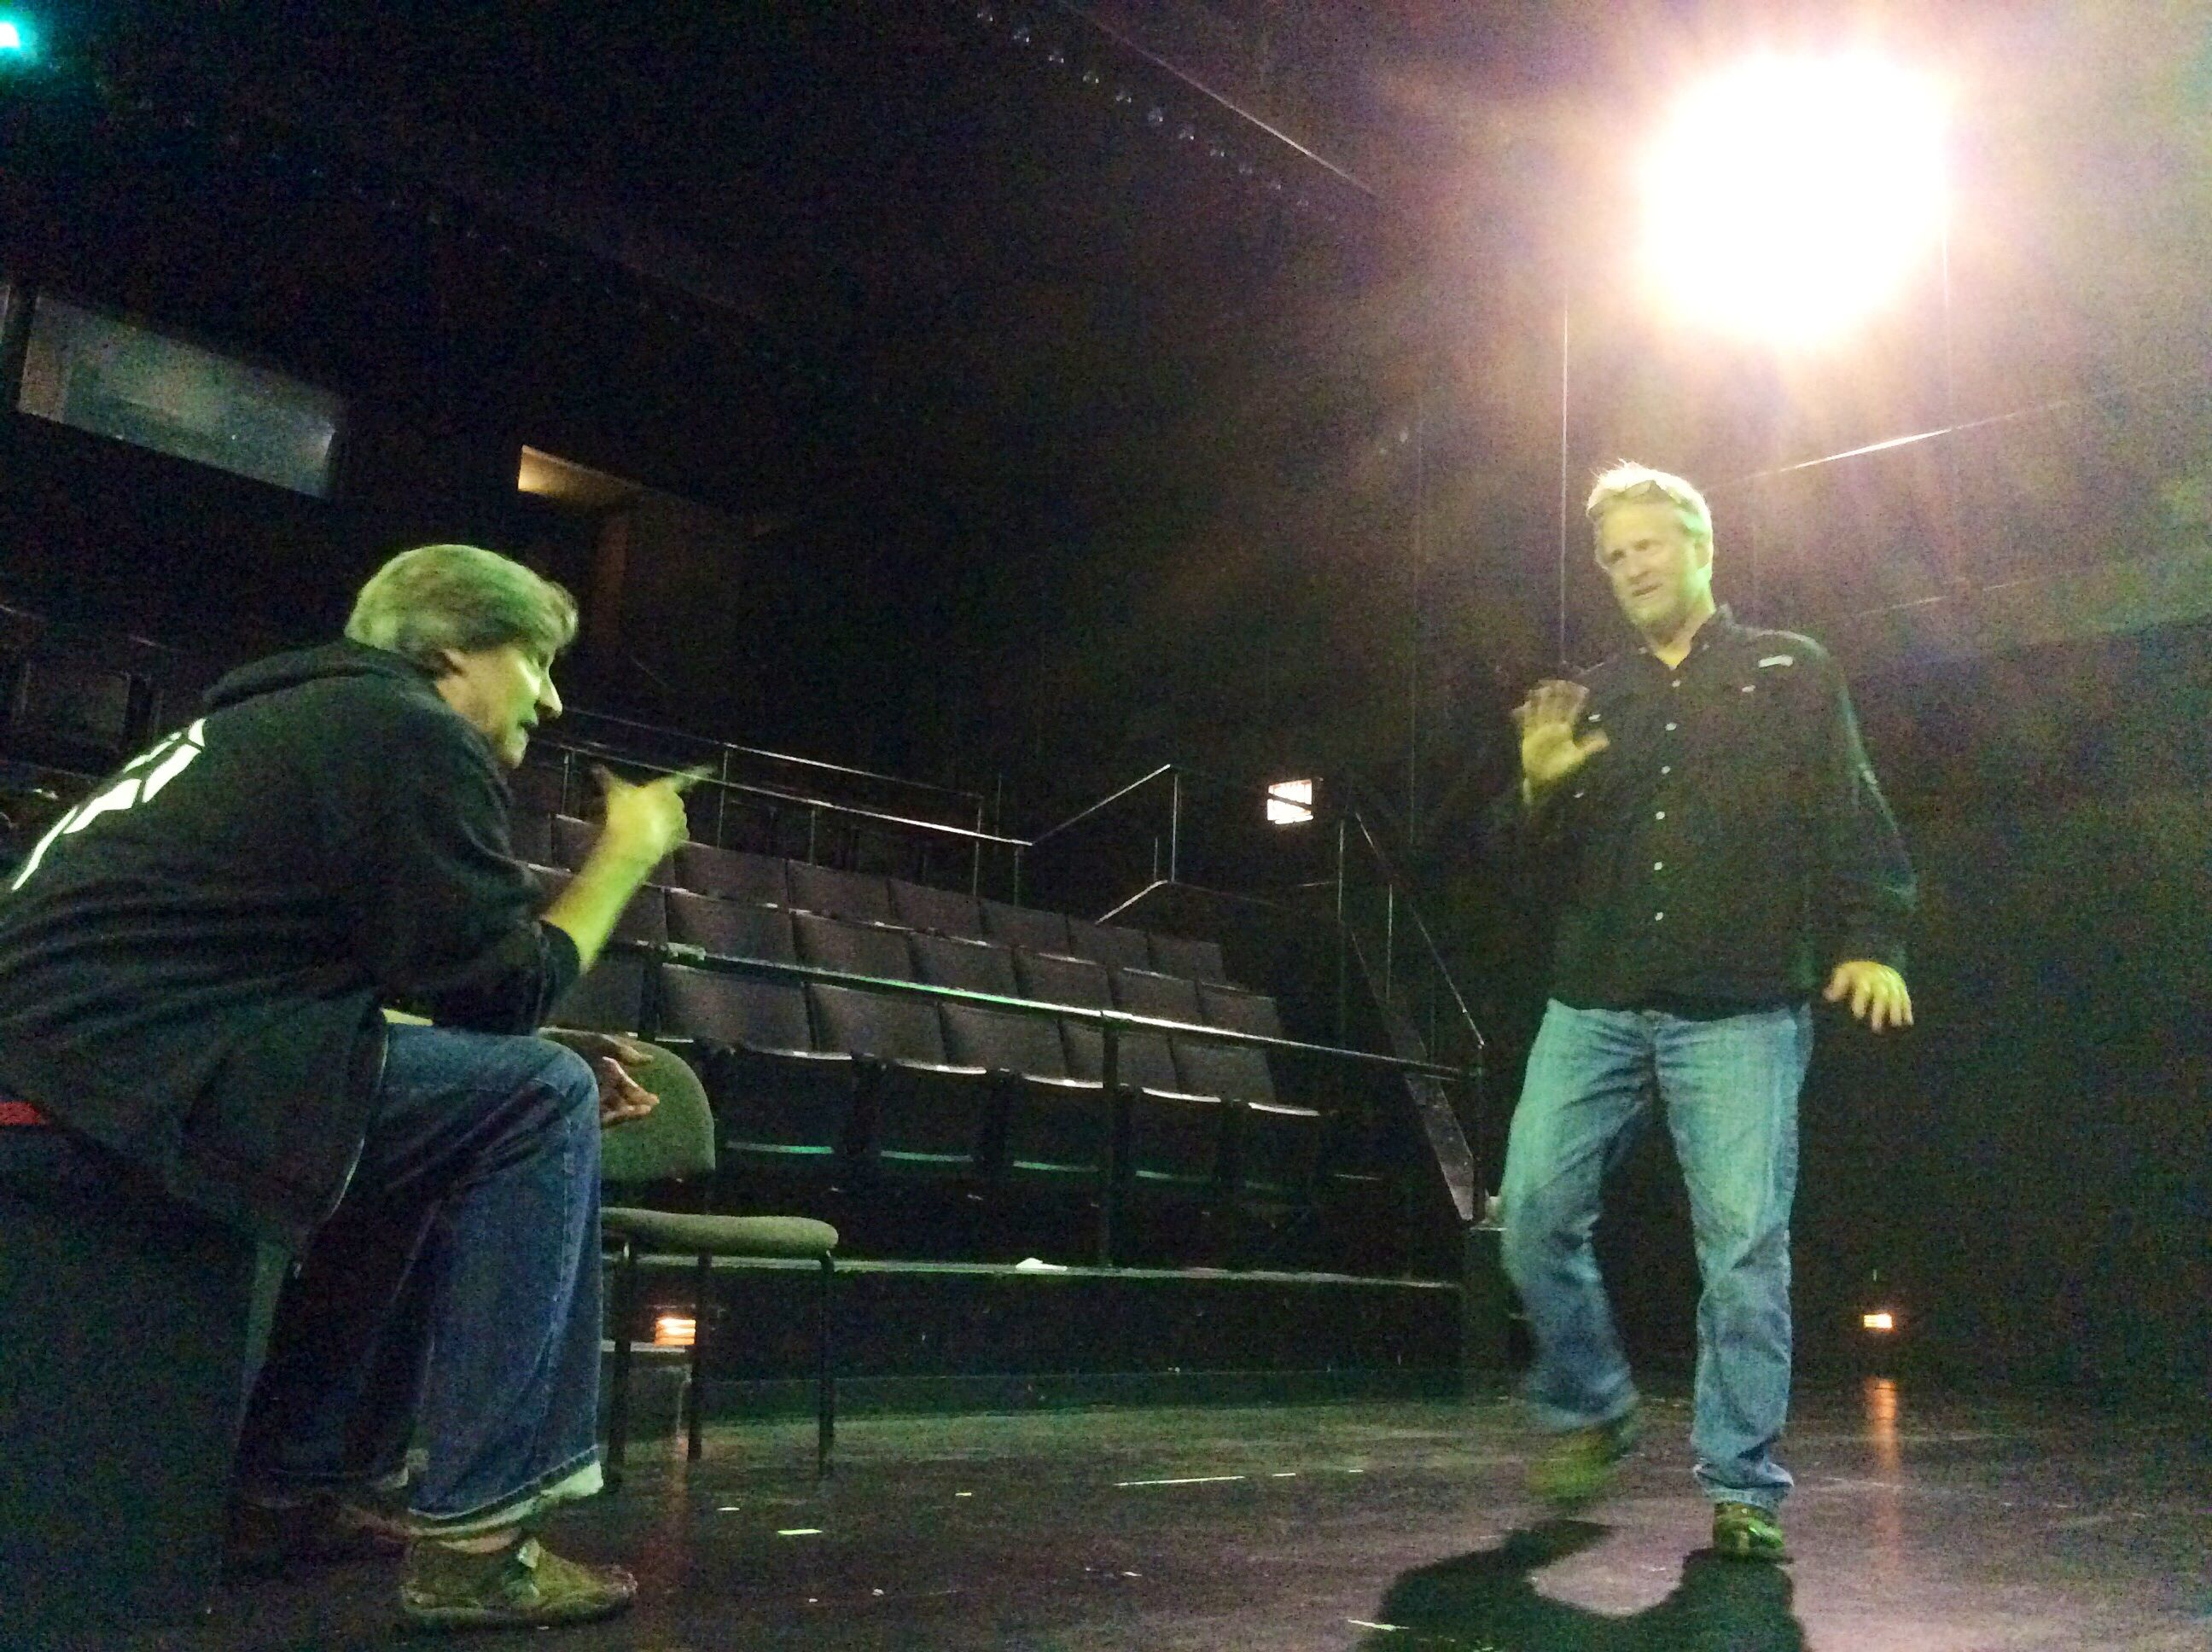 Highland Park actor translates play into sign language